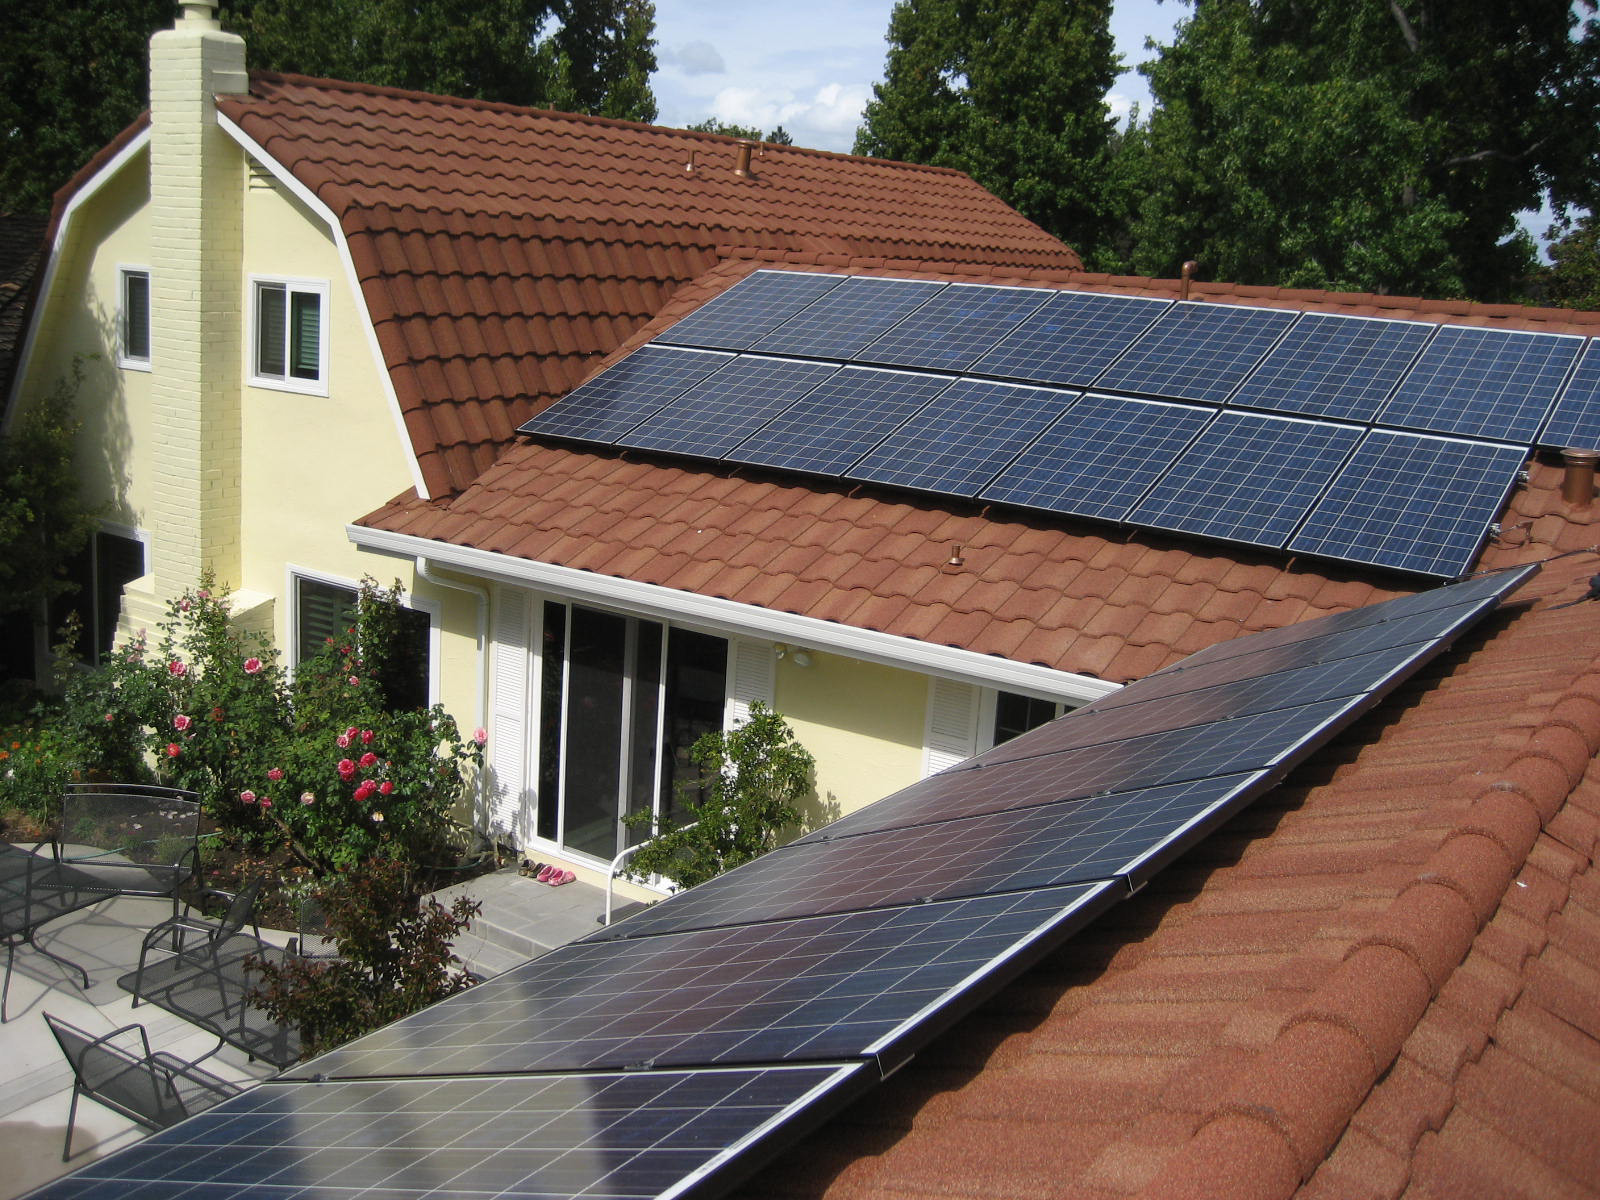 Roof Replacement Solar PV Installation Sunnyvale, CA.jpg